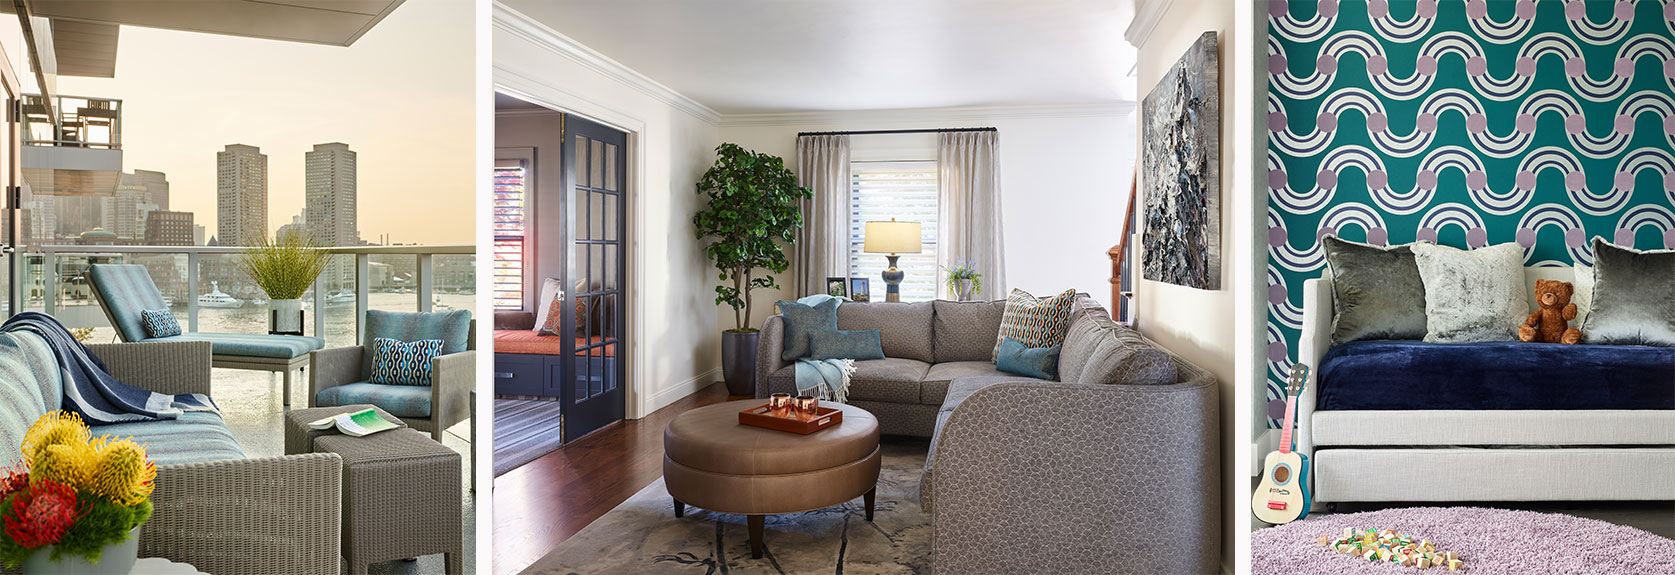 Living spaces by Interiology Design Co.